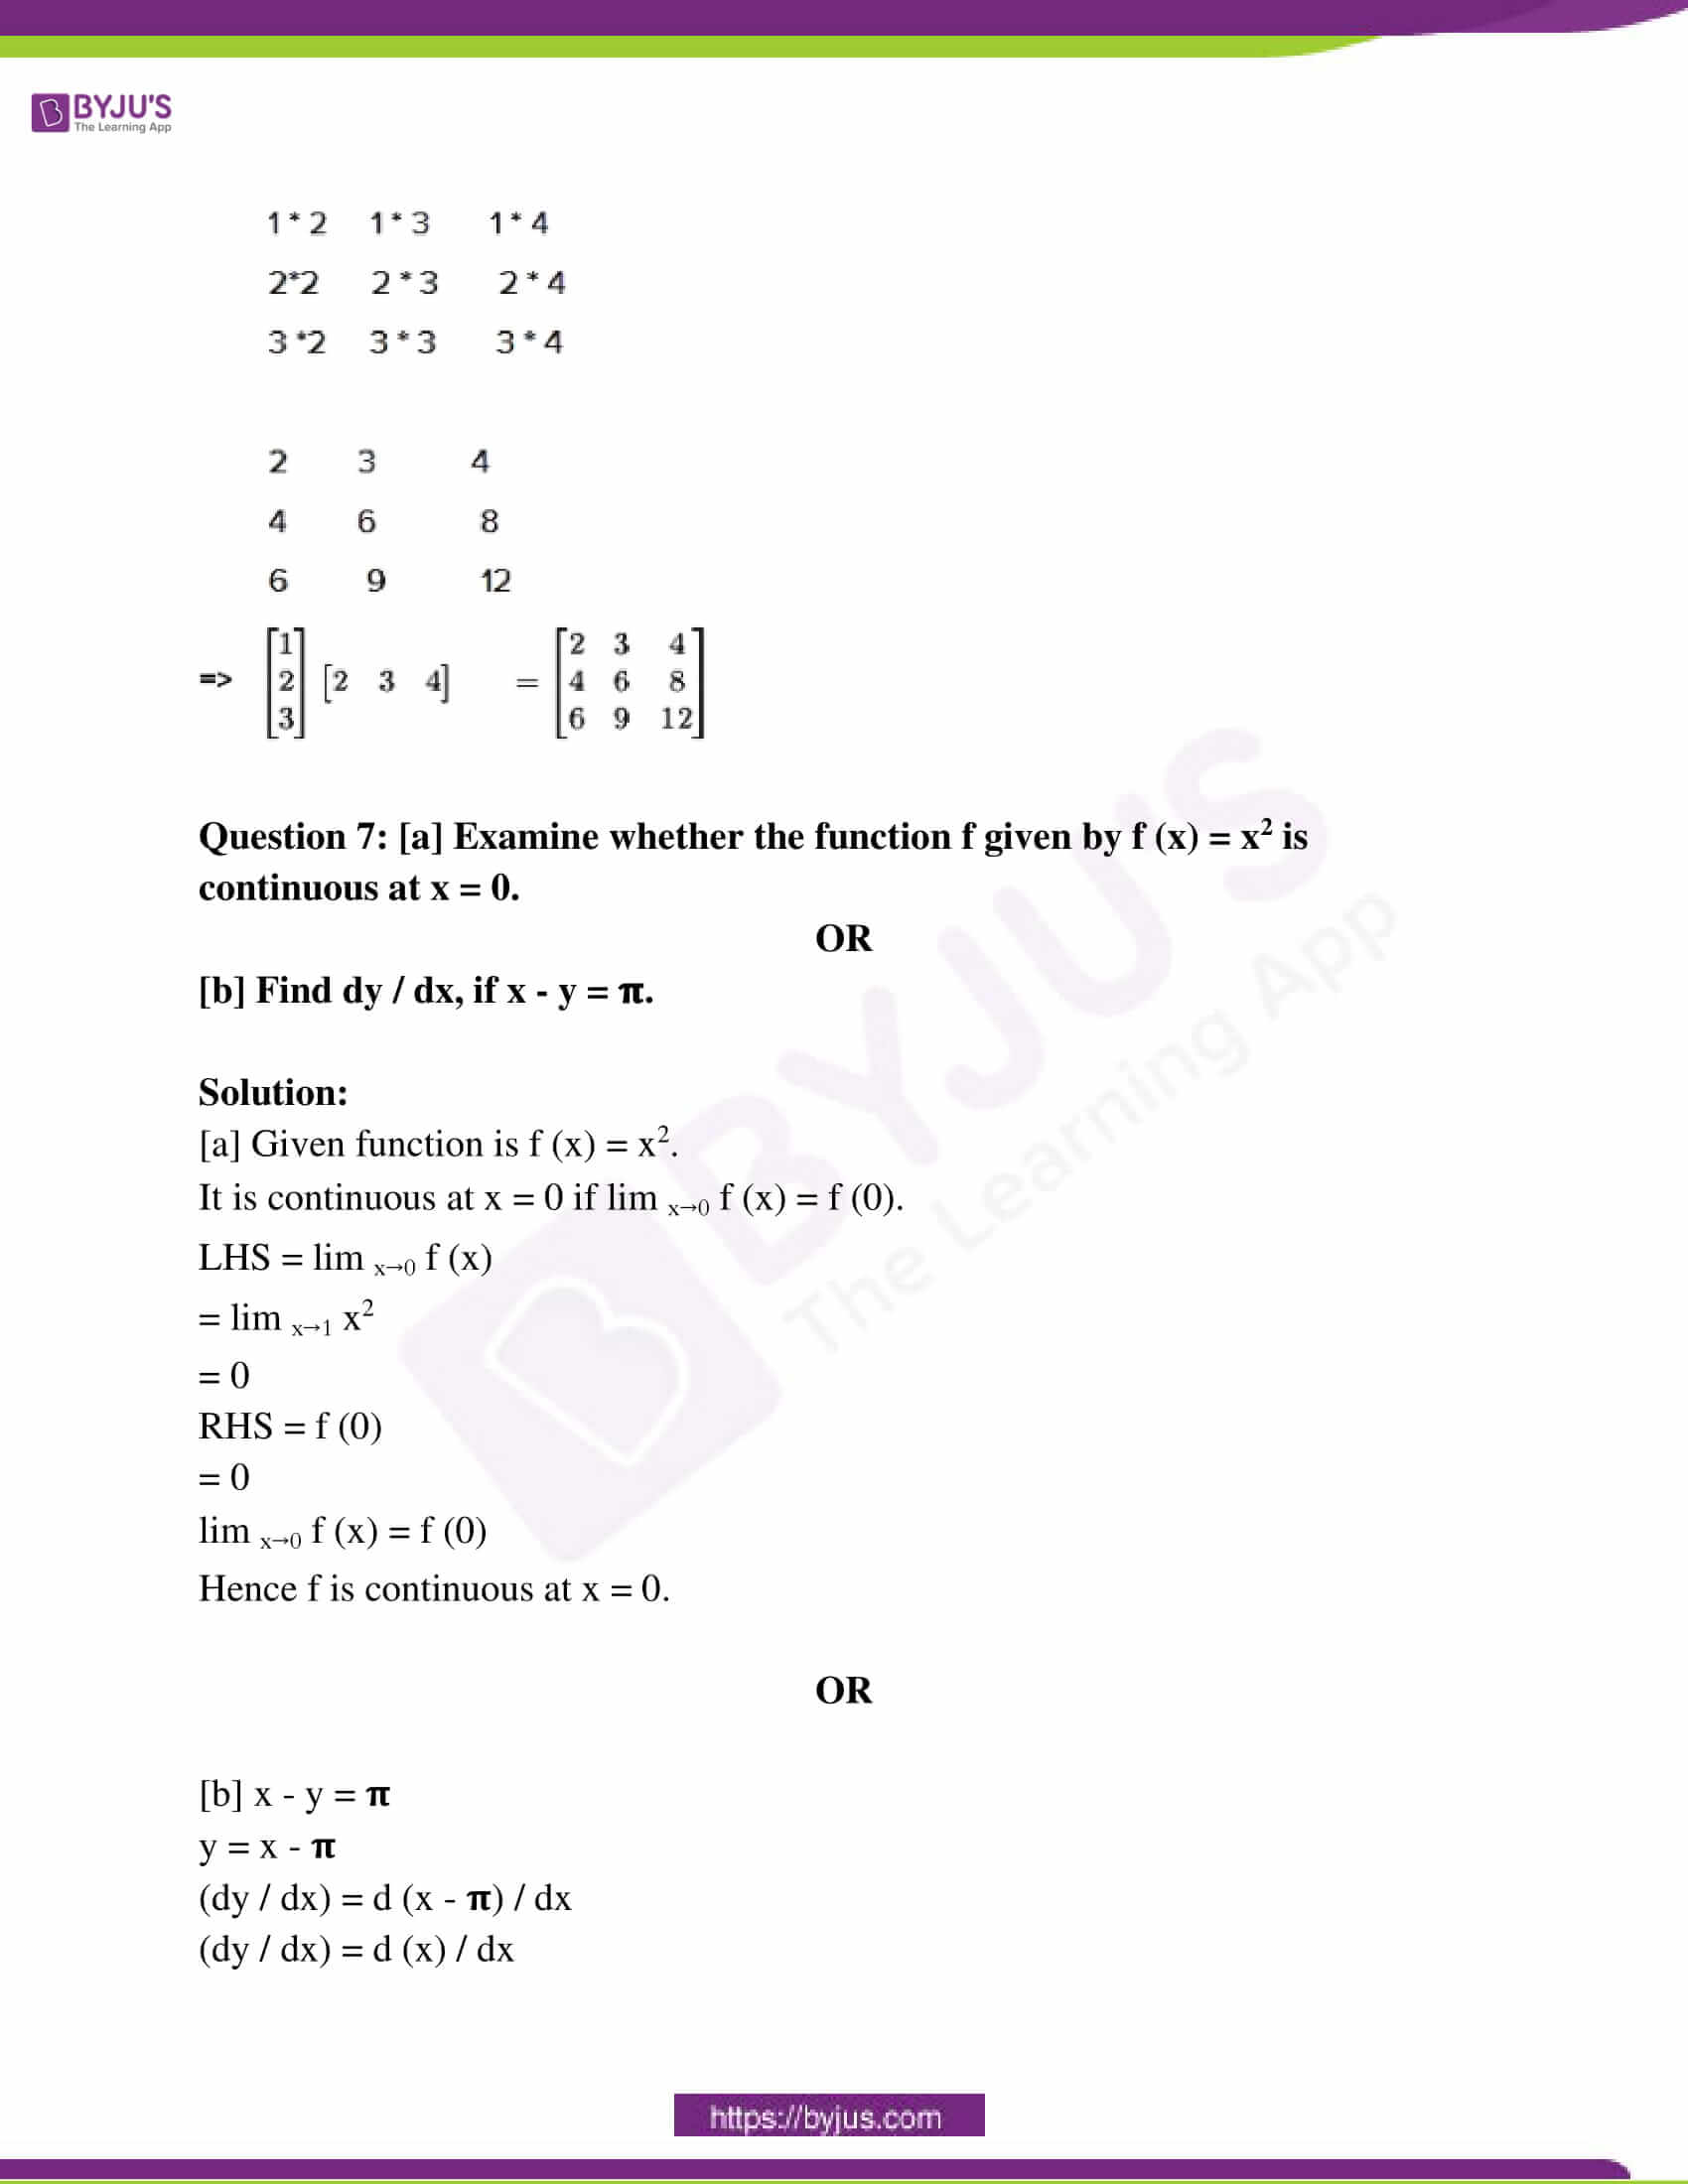 mp board class 12 questions and answers maths 2020 09